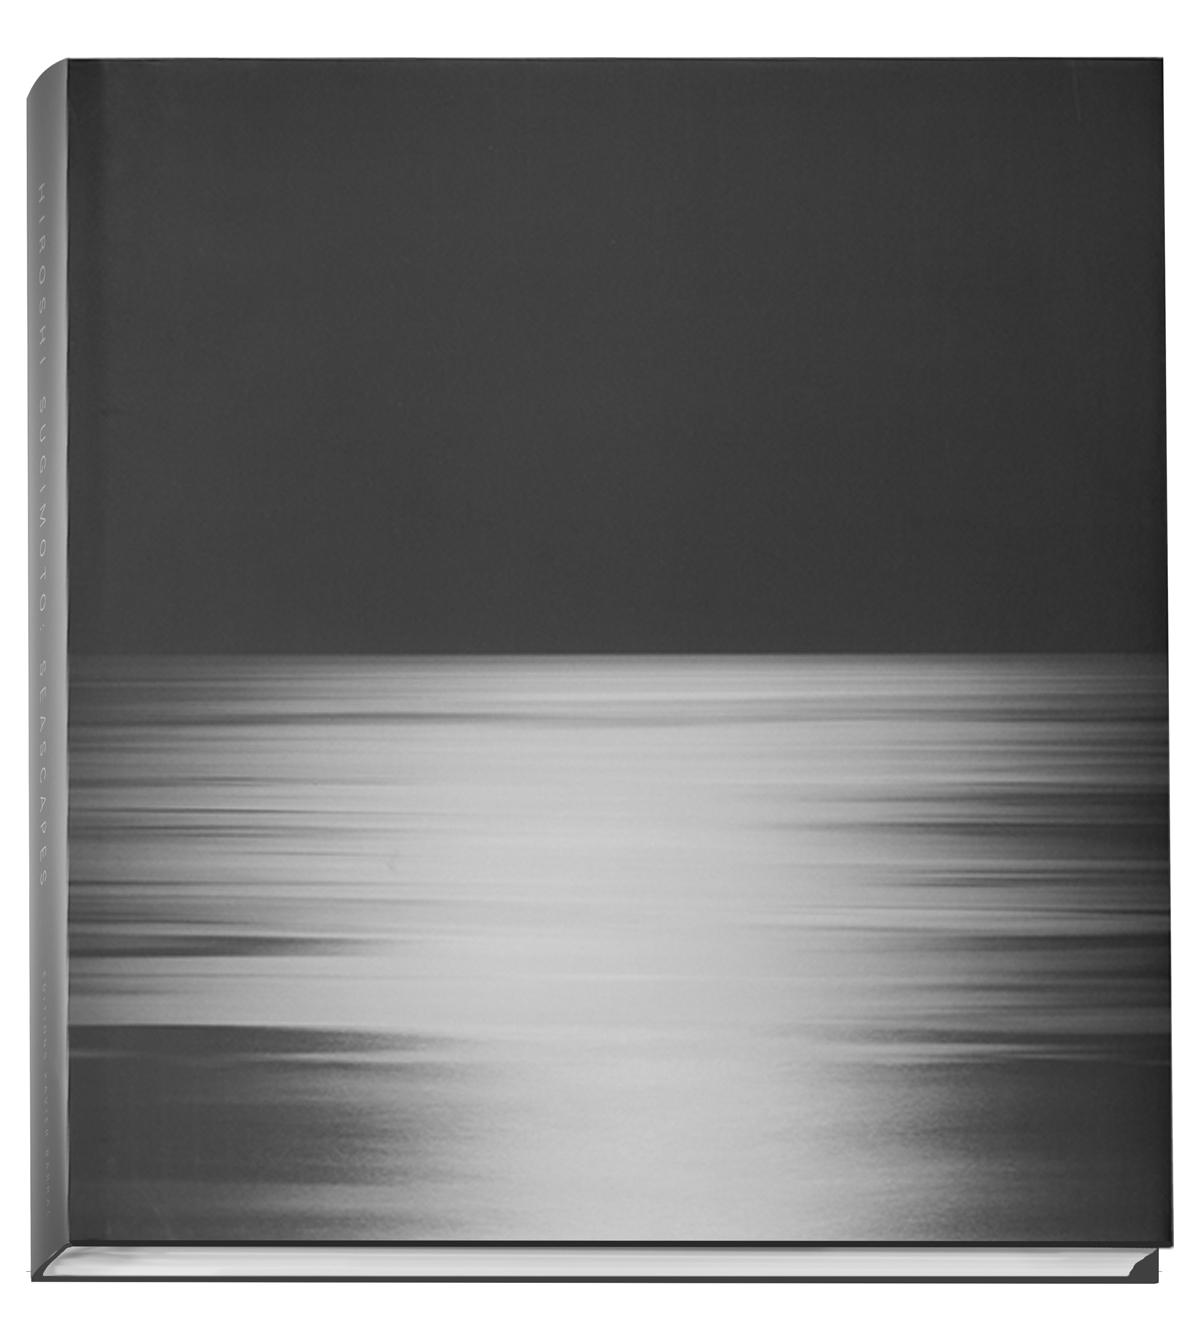 Cover of the book Hiroshi Sugimoto : Seascapes – Éditions Xavier Barral, 2015